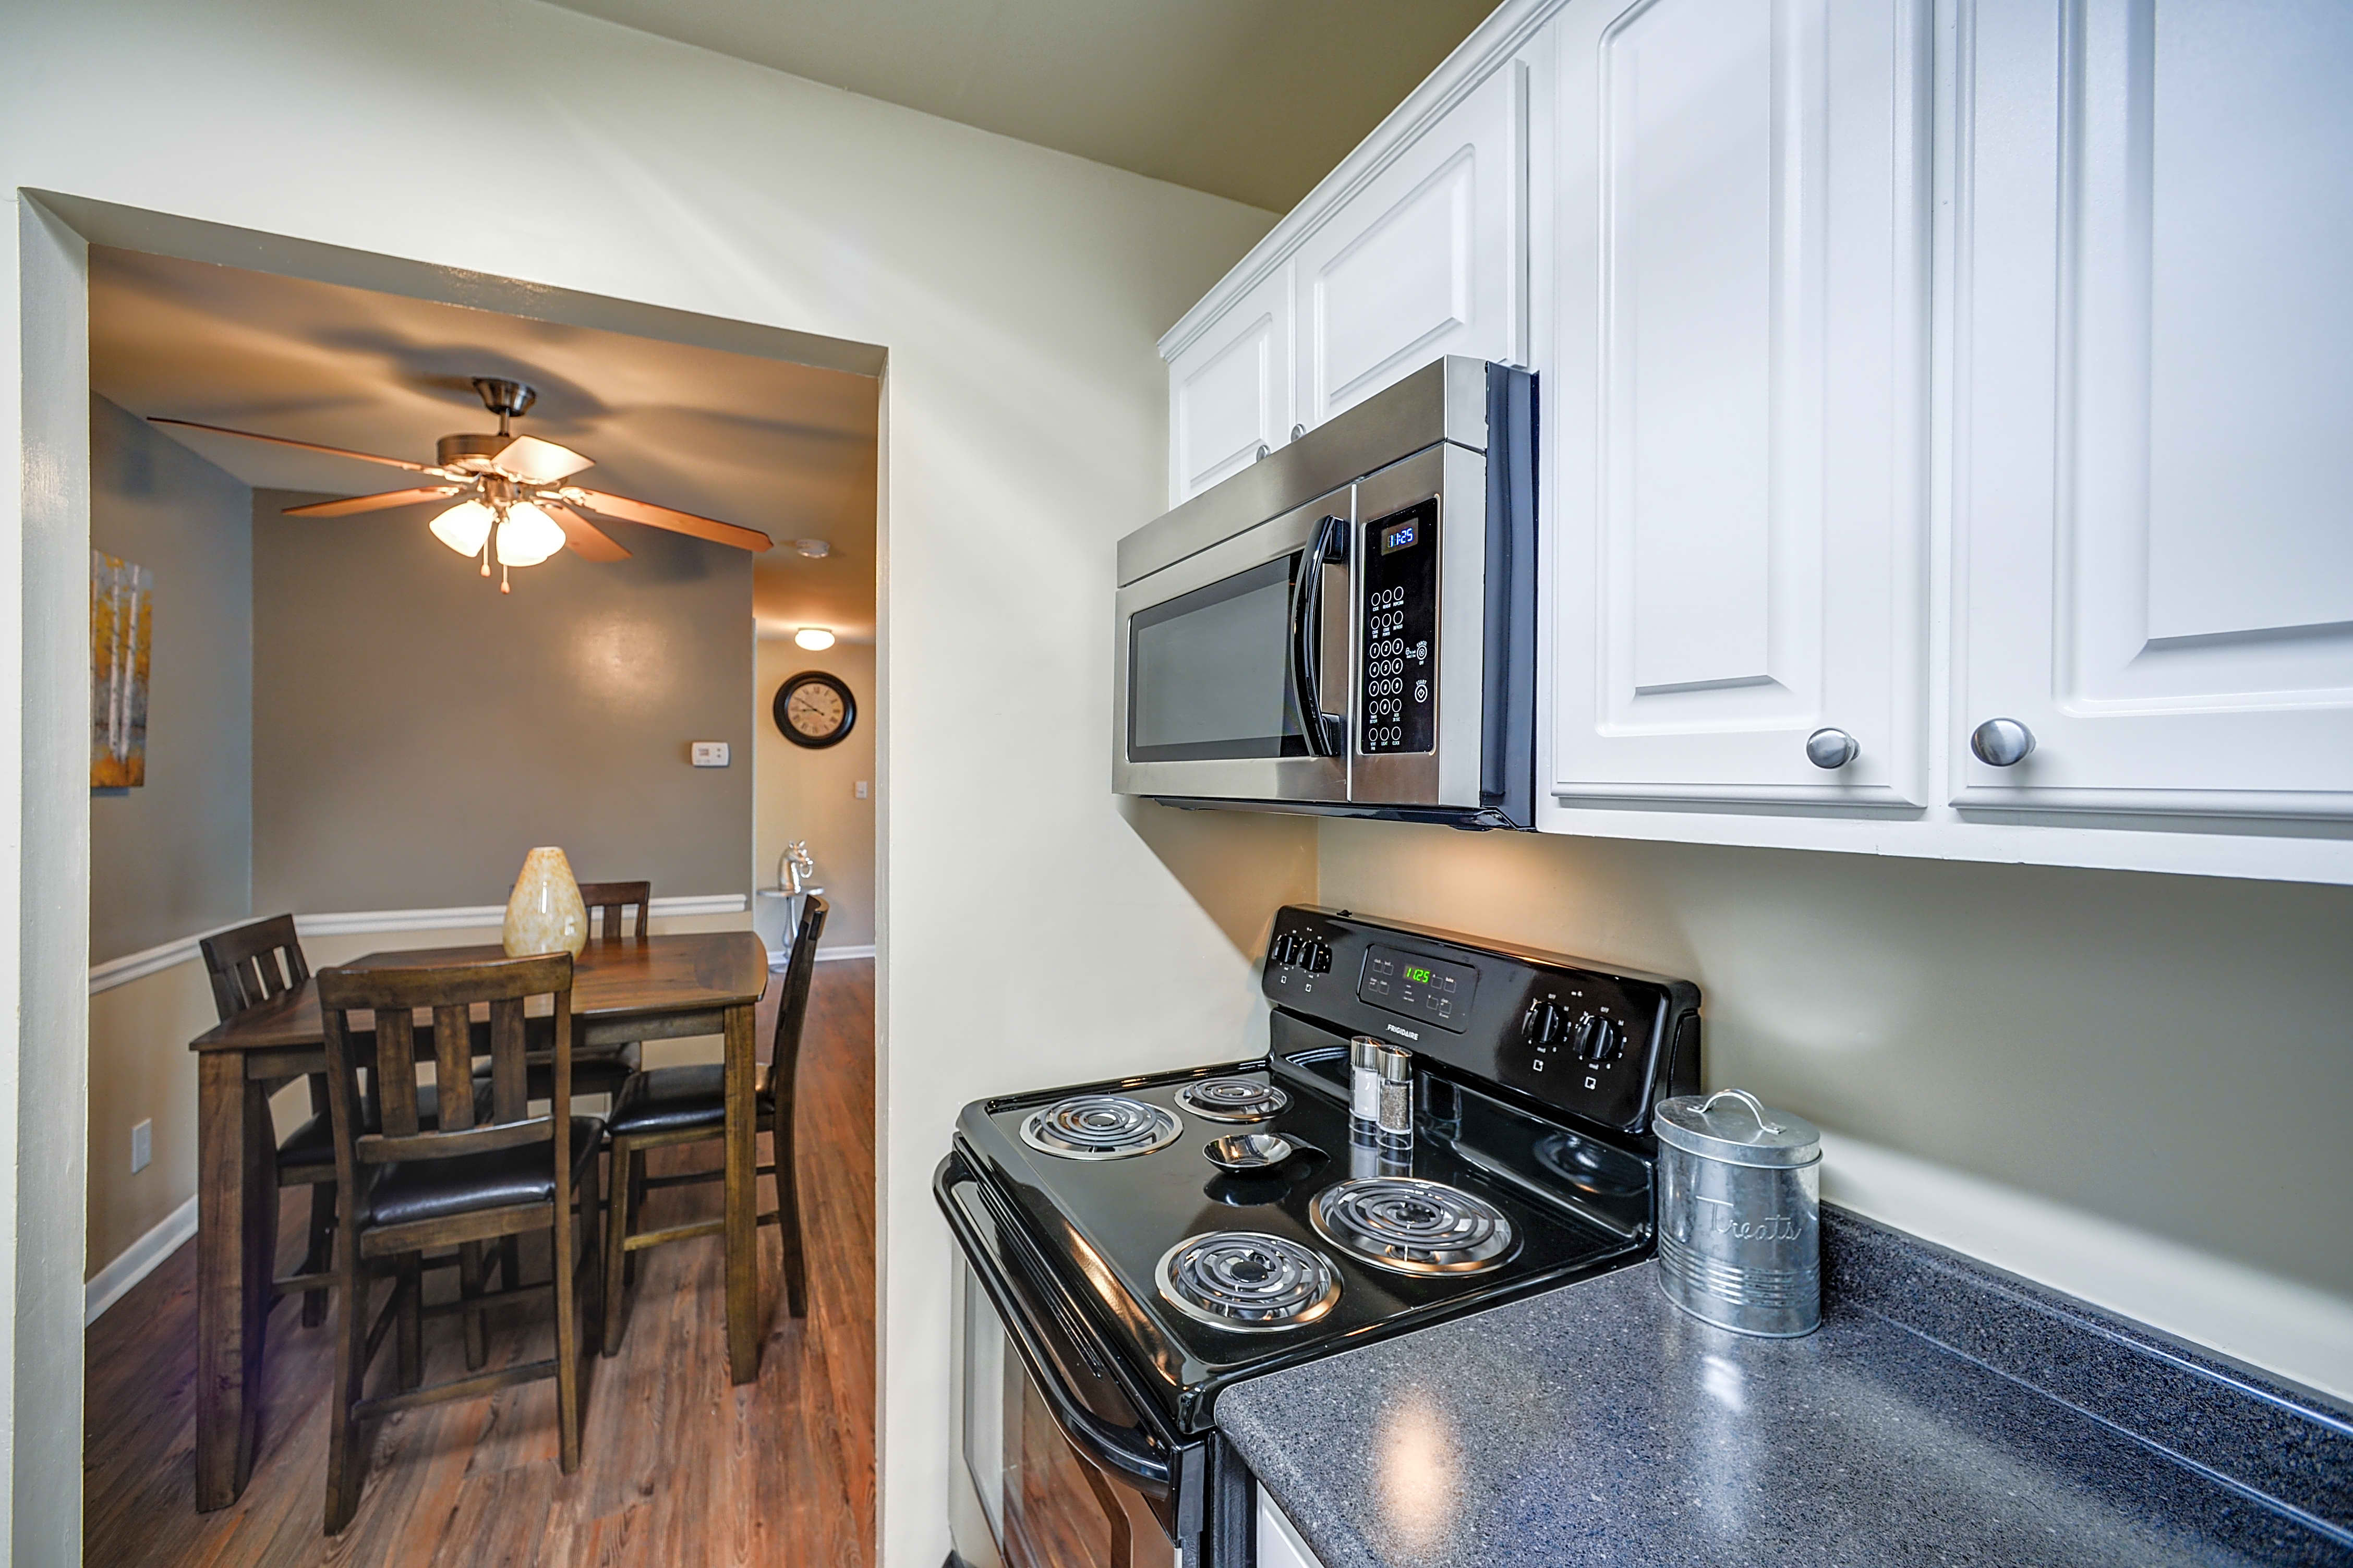 Apartments Near UNC PineGate for University of North Carolina Students in Chapel Hill, NC